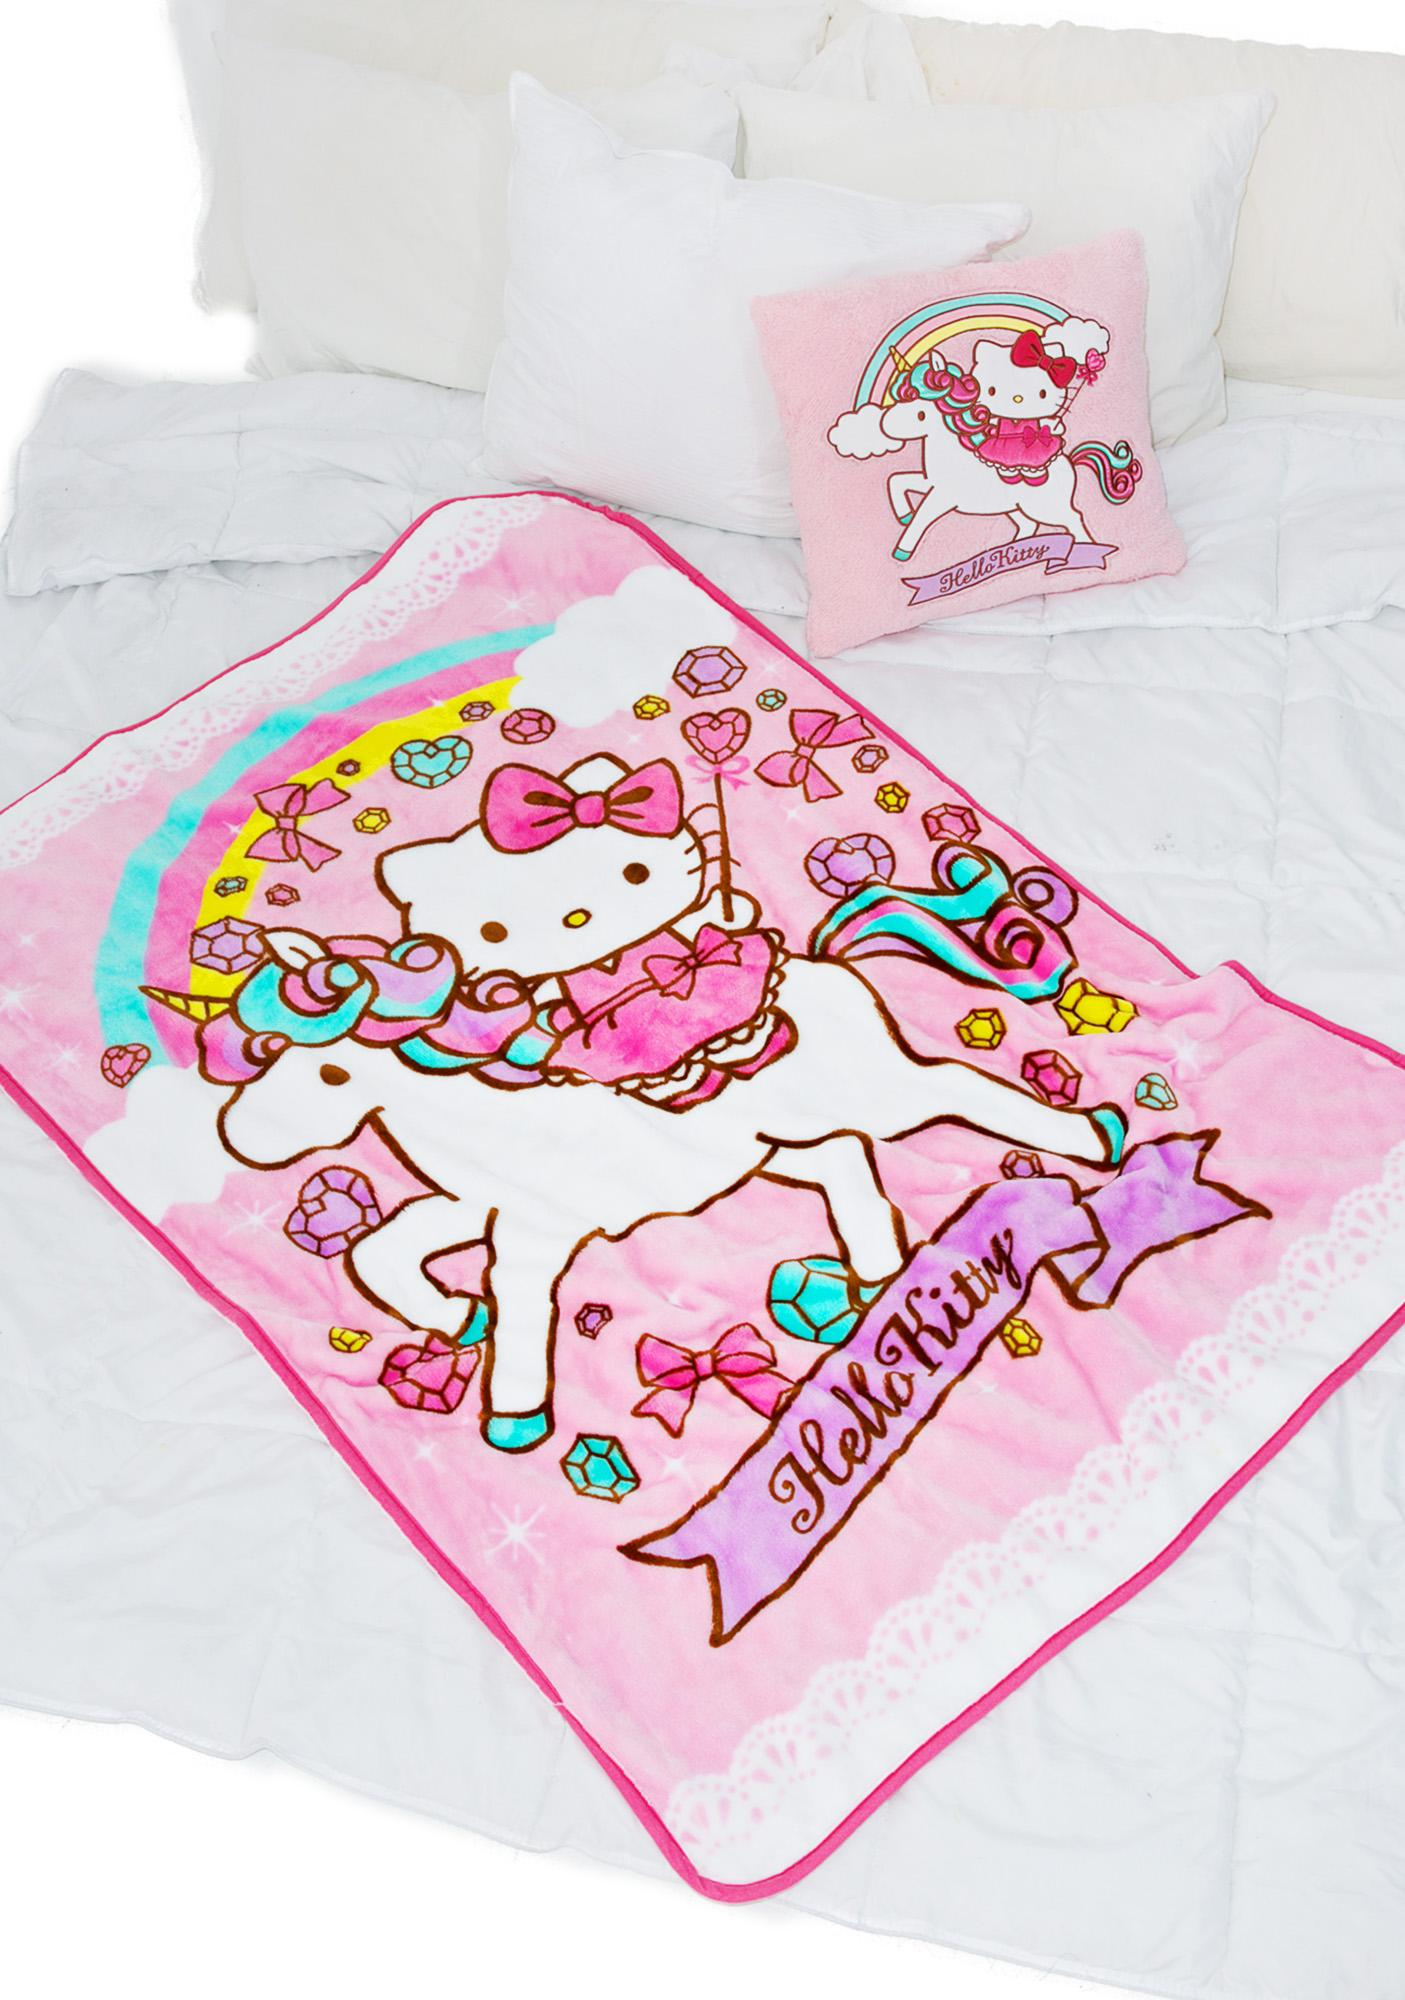 Sanrio Unicorn Kitty Blanket